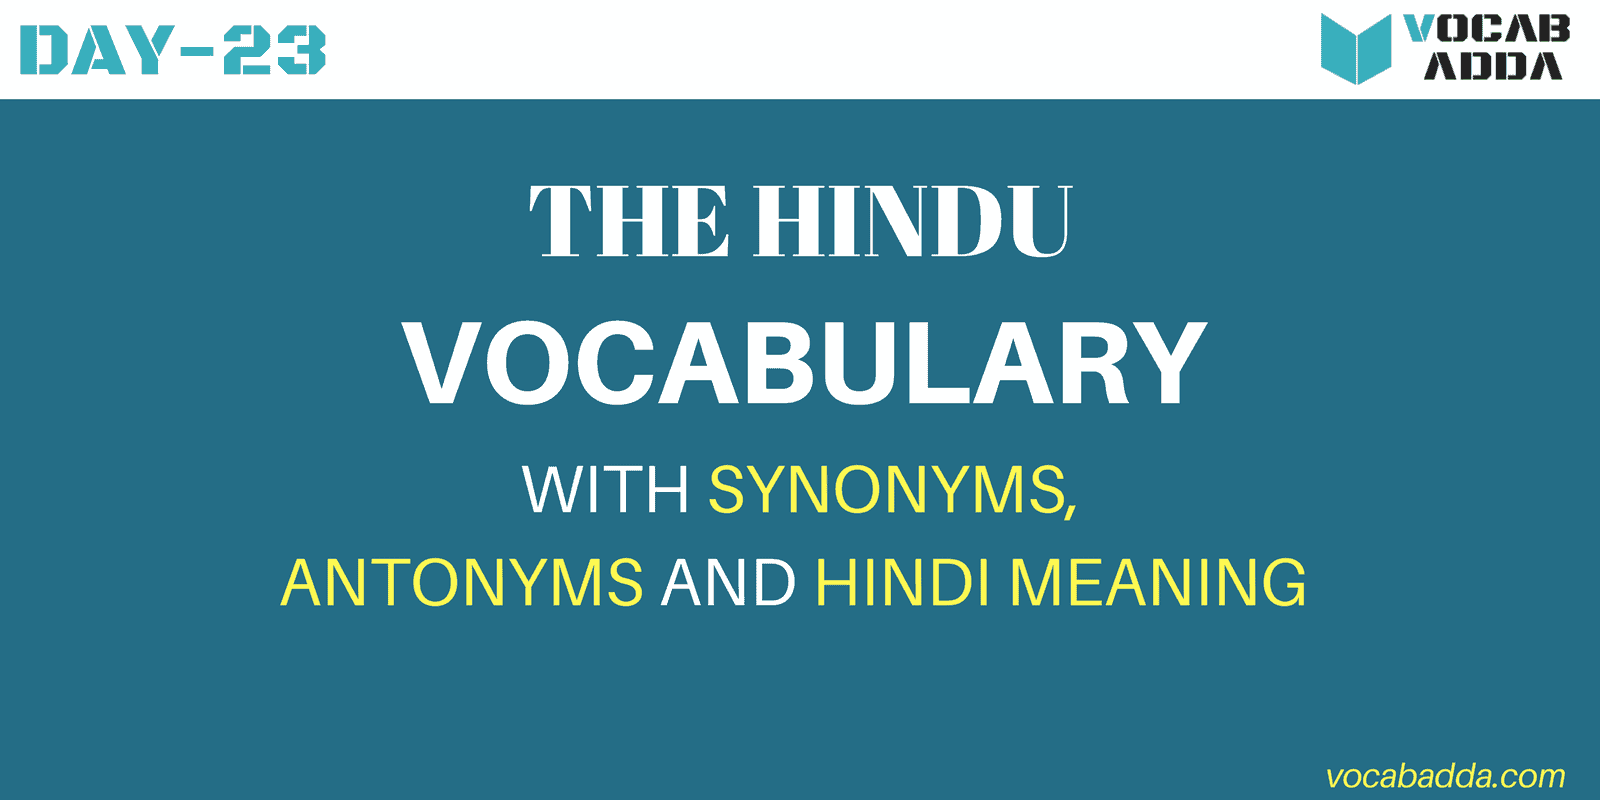 The Hindu Vocabulary Day-23